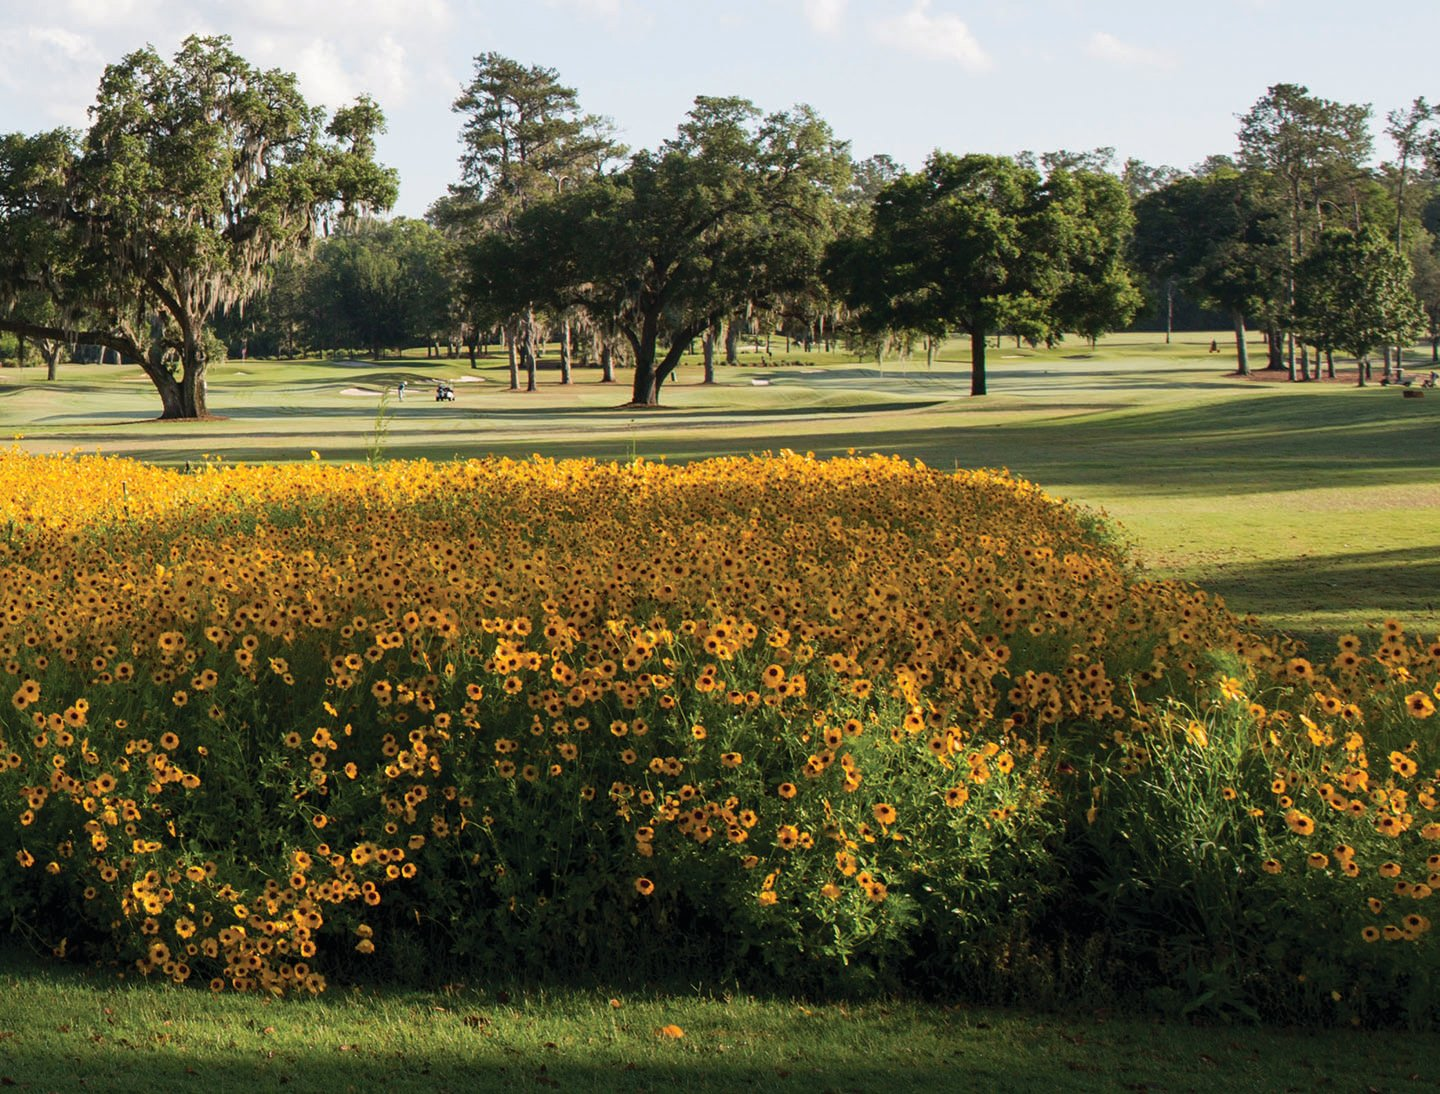 Wildflowers encourage native pollination on golf courses.